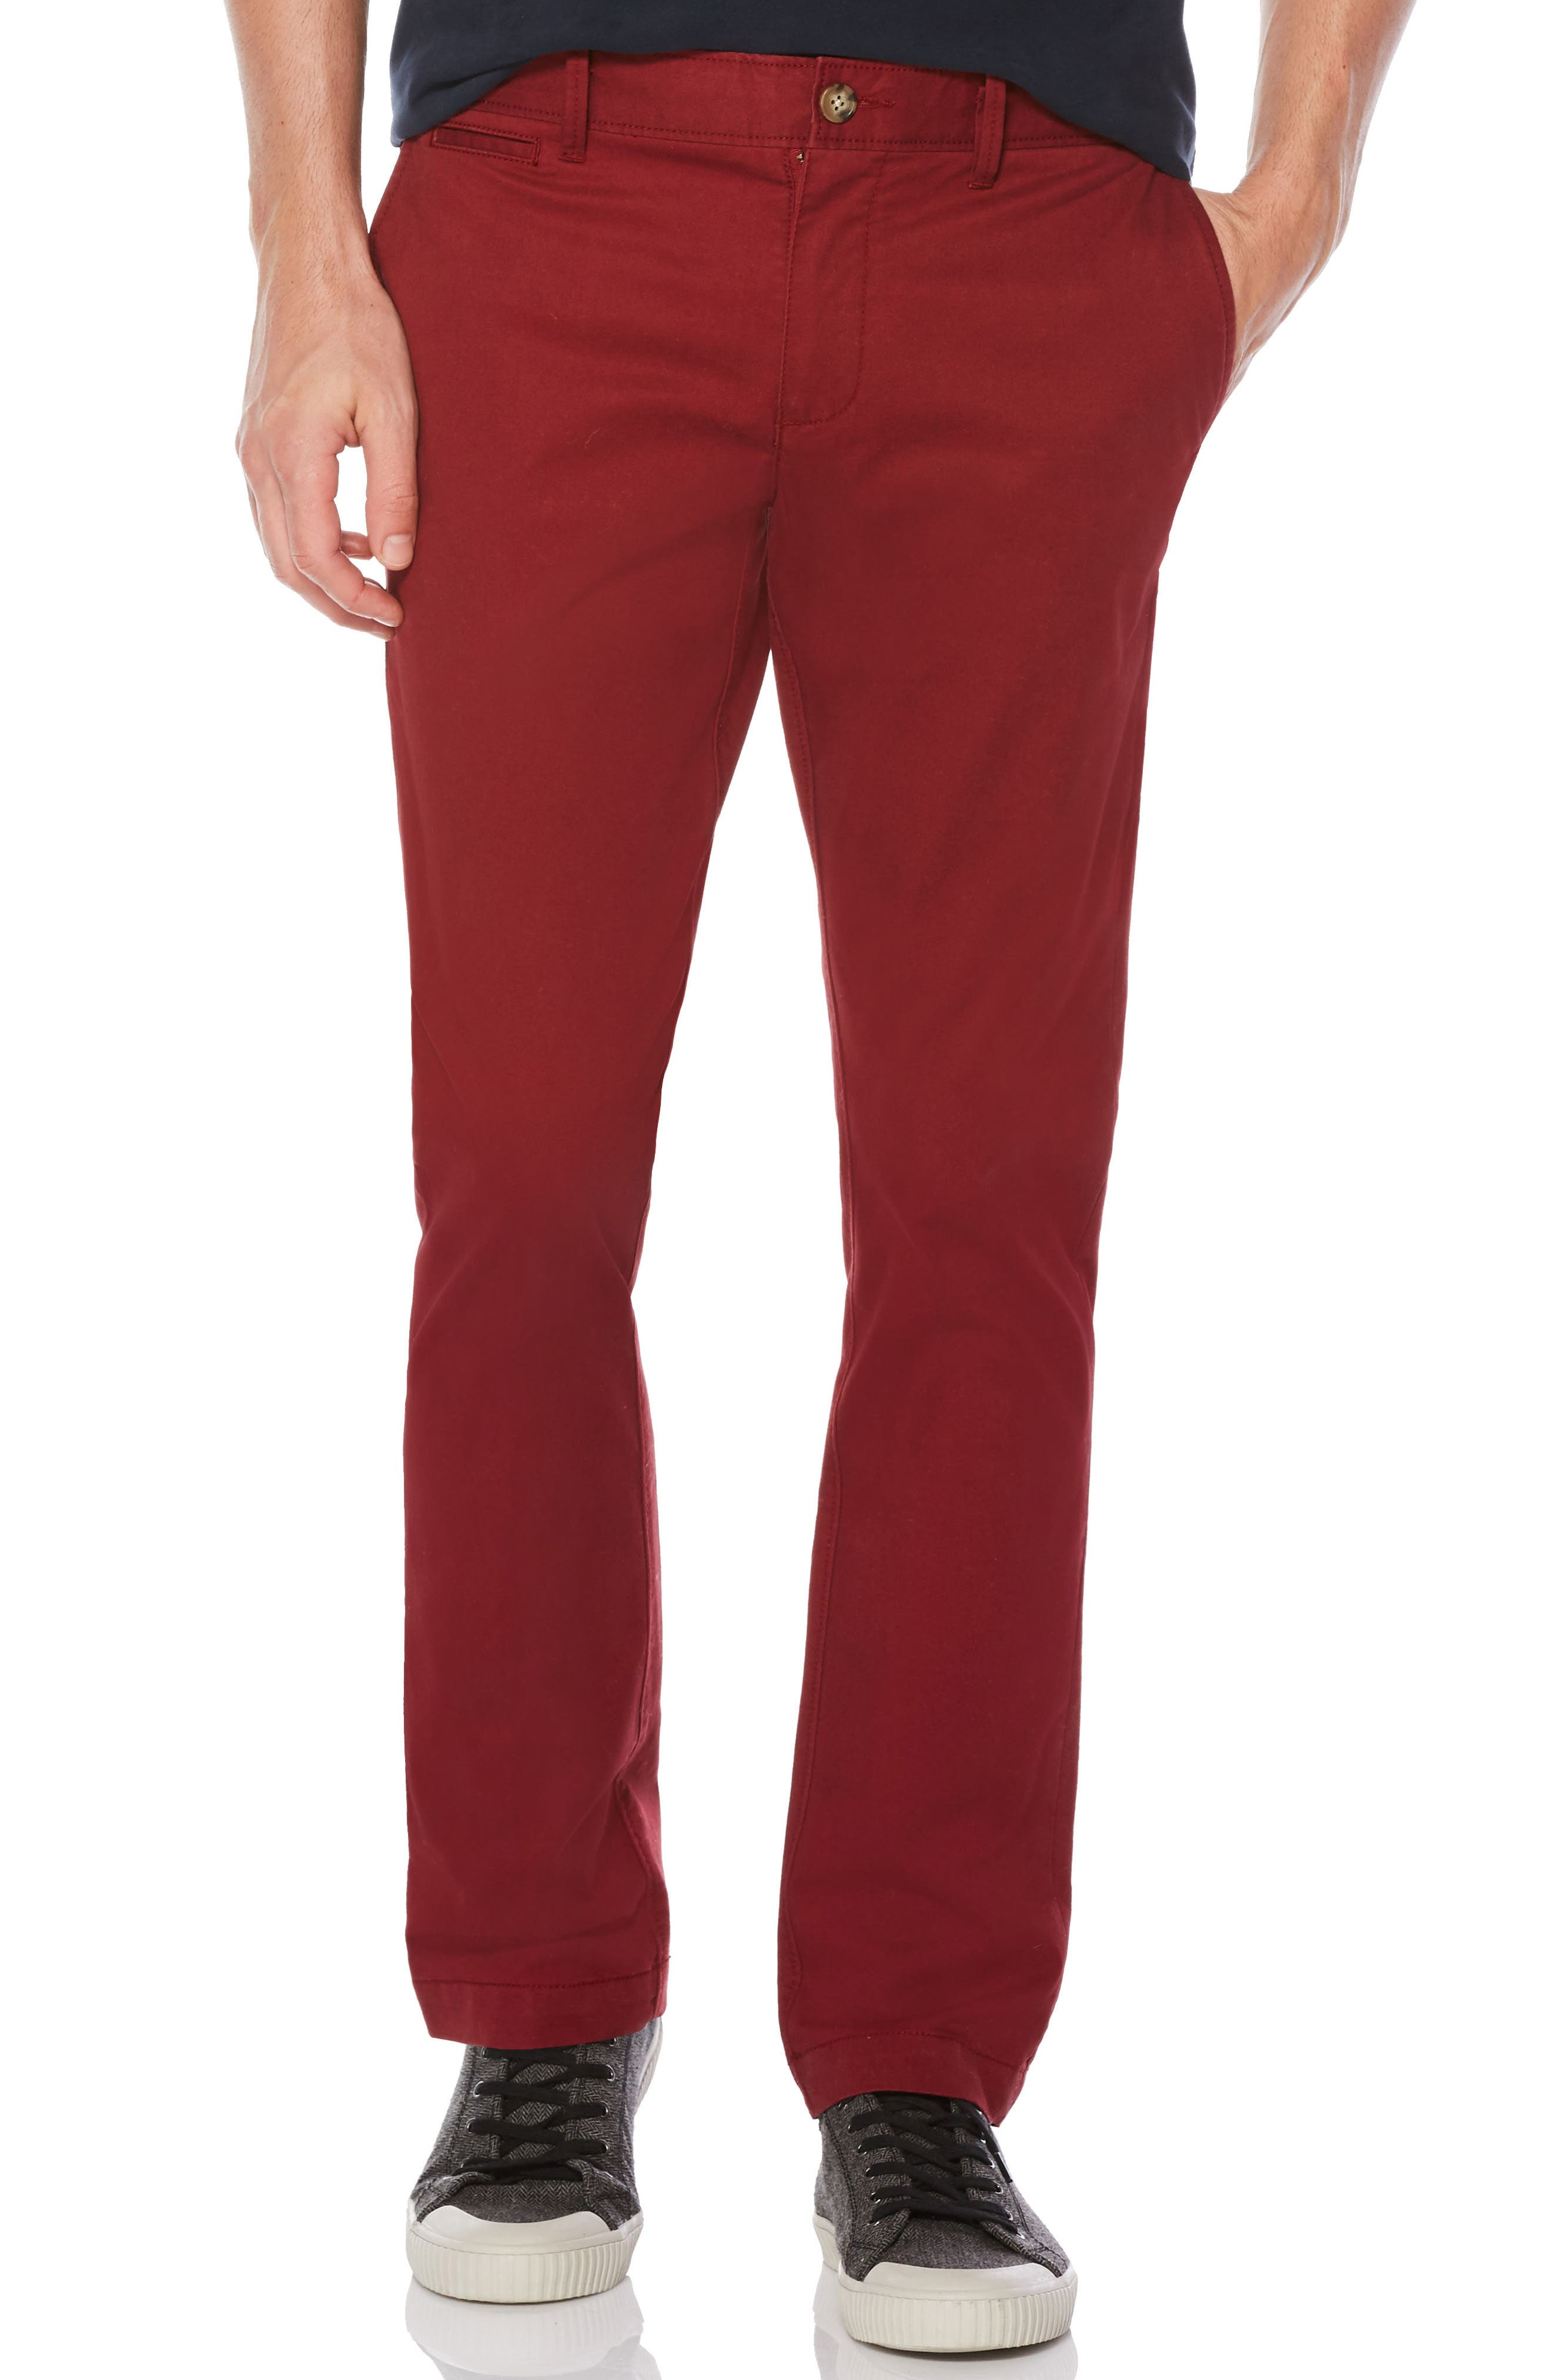 P55 Slim Fit Stretch Chinos,                         Main,                         color, Pomegranate